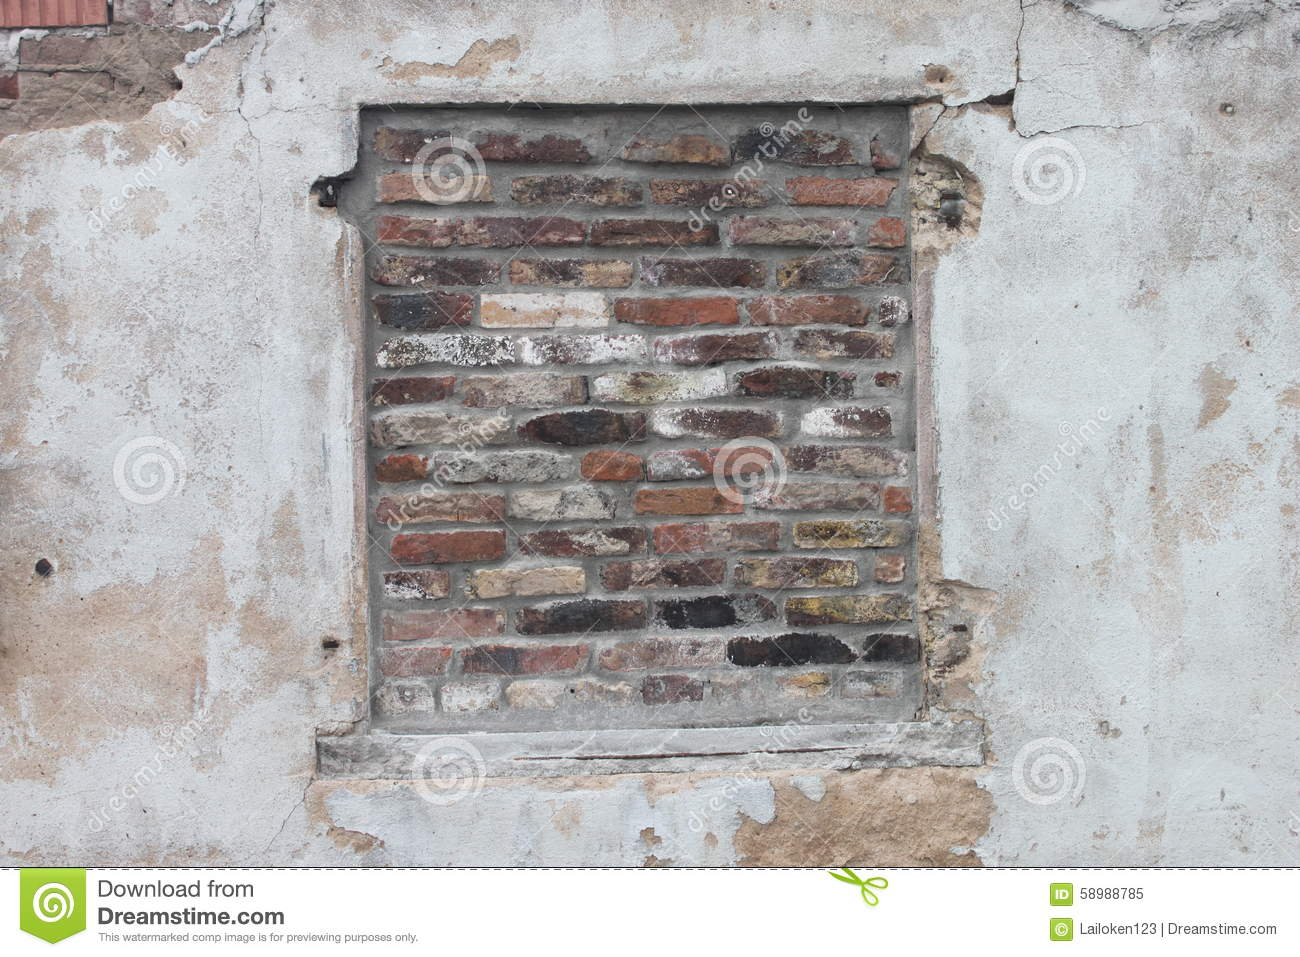 bricked-window-brick-wall-has-been-up-58